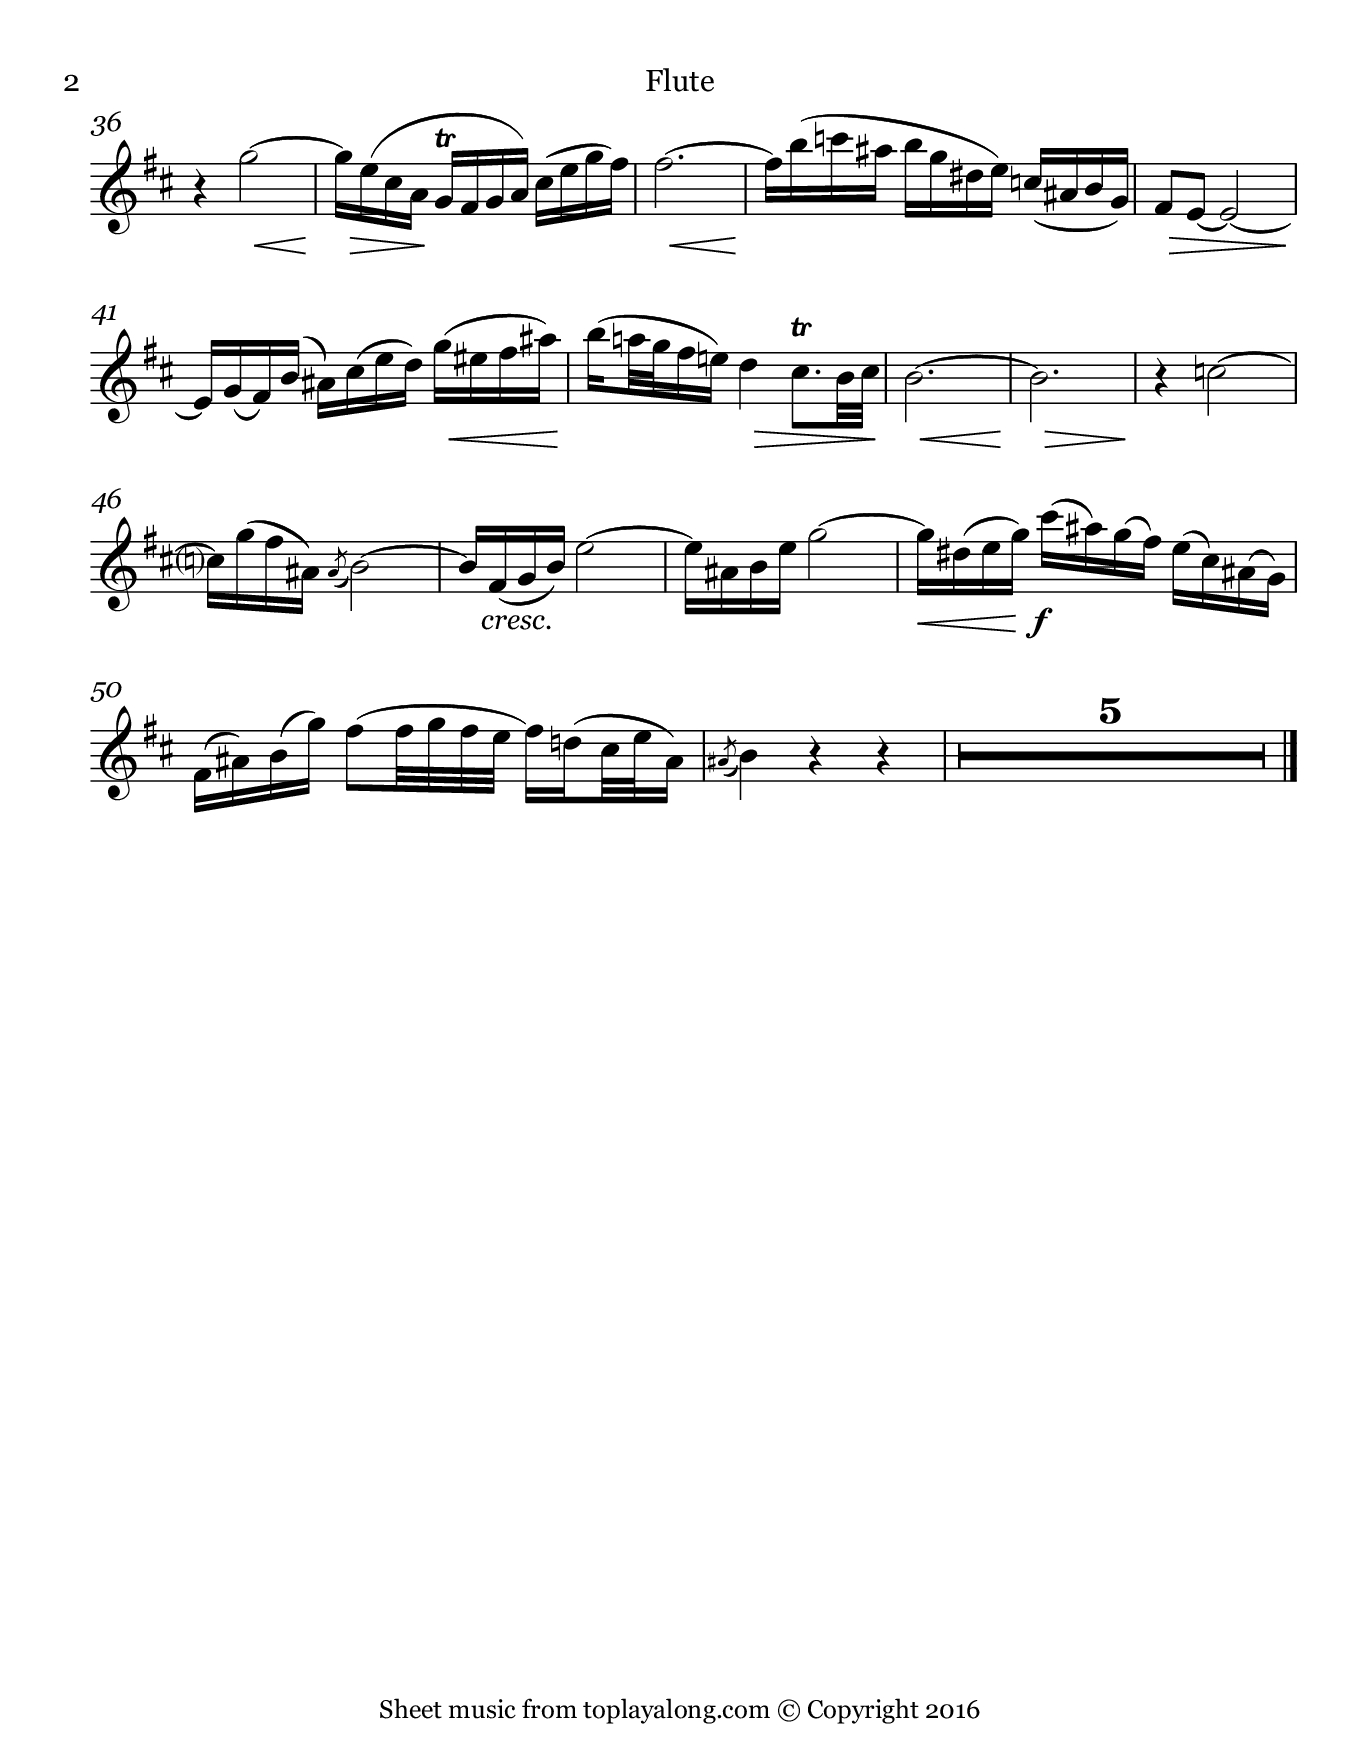 Easter Oratorio (II. Adagio) by J. S. Bach. Sheet music for Flute, page 2.